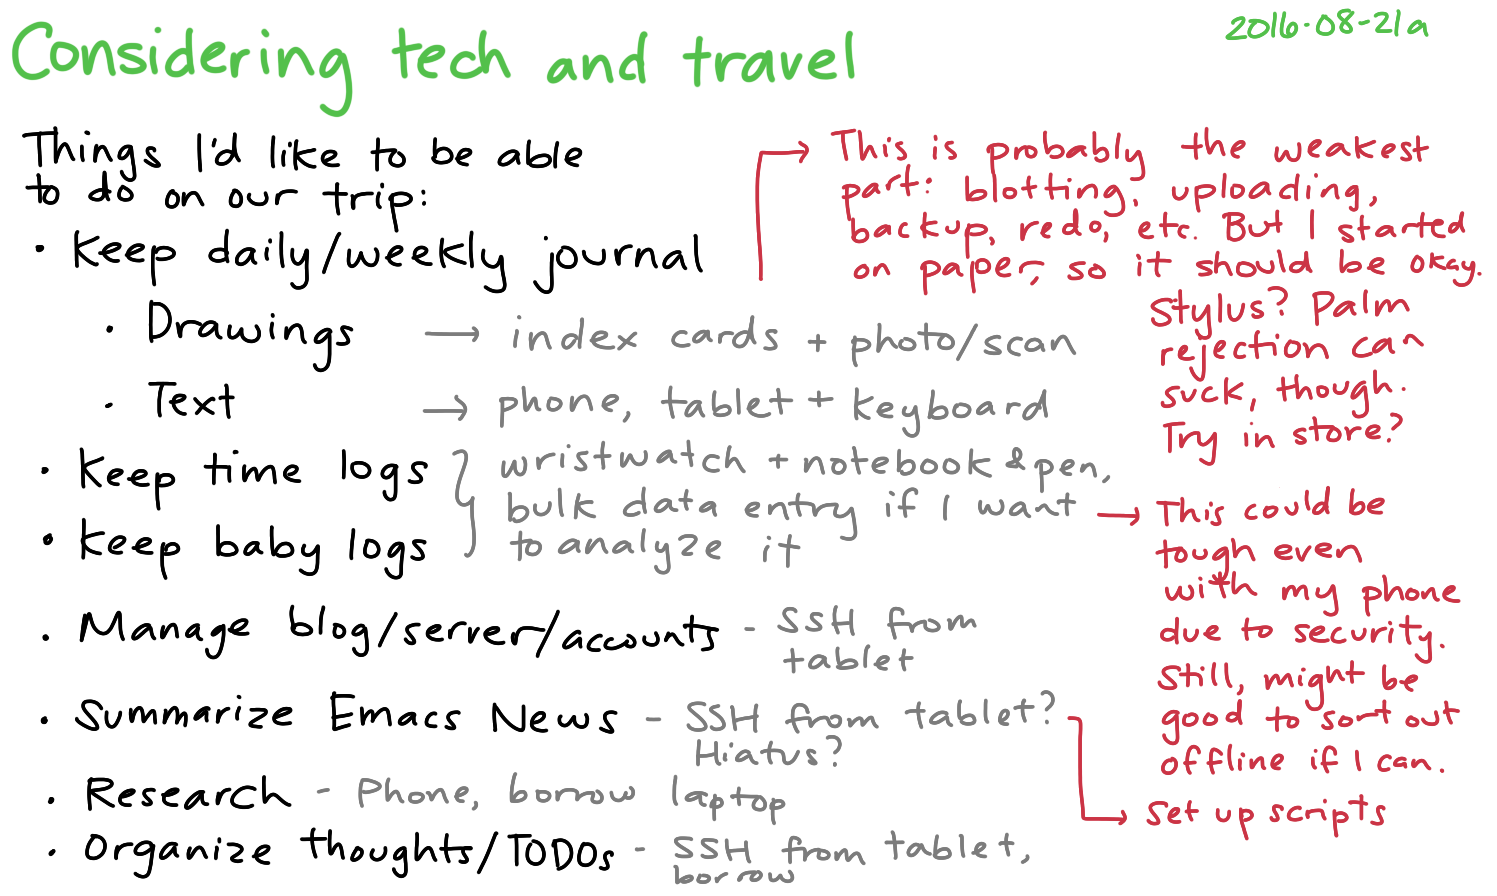 2016-08-21a Considering tech and travel -- index card #travel #tech #mobile.png